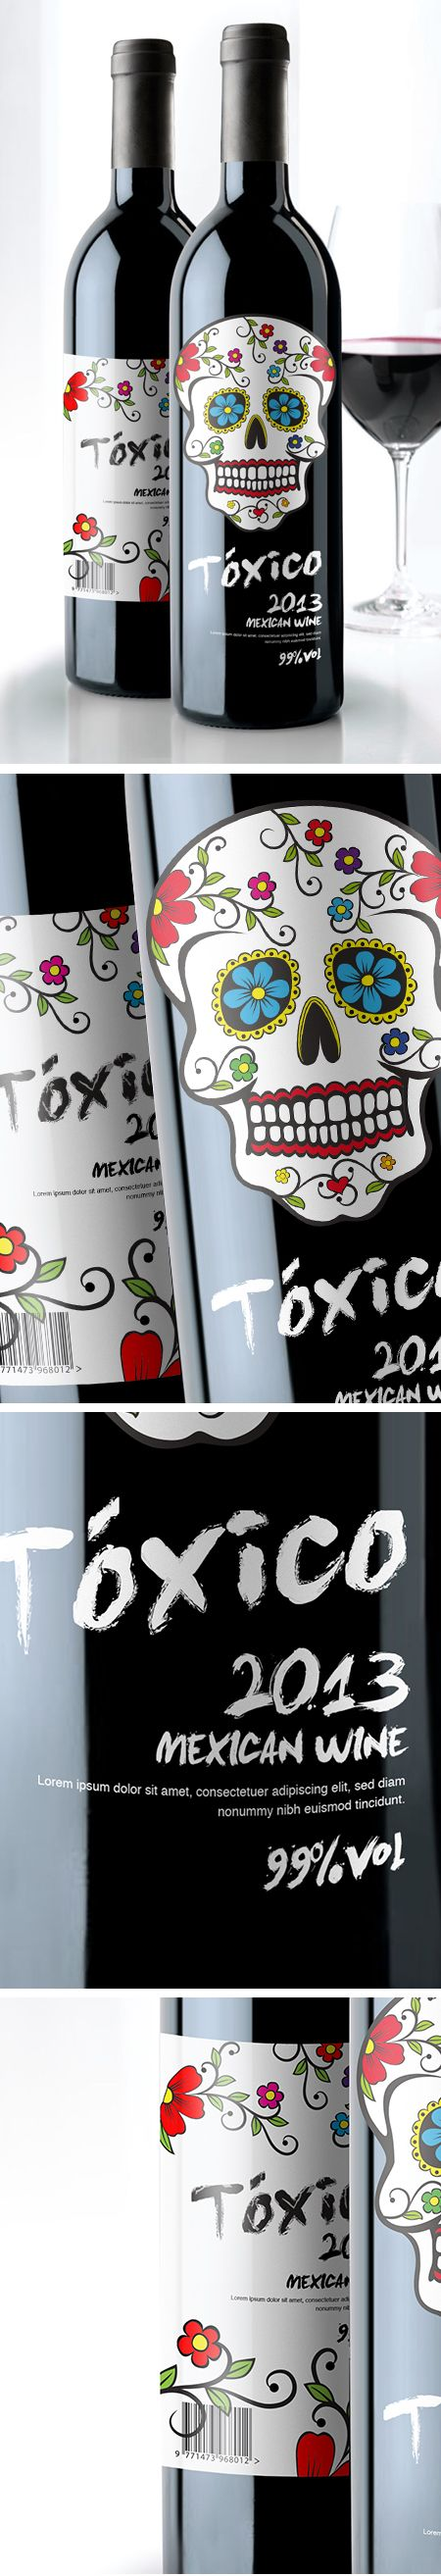 Marc, Our top pin from © Ilas® 2013 - Federica Febbraio / Docente Nicola Cozzolino. Awesome #packaging for our #wine loving peeps PD